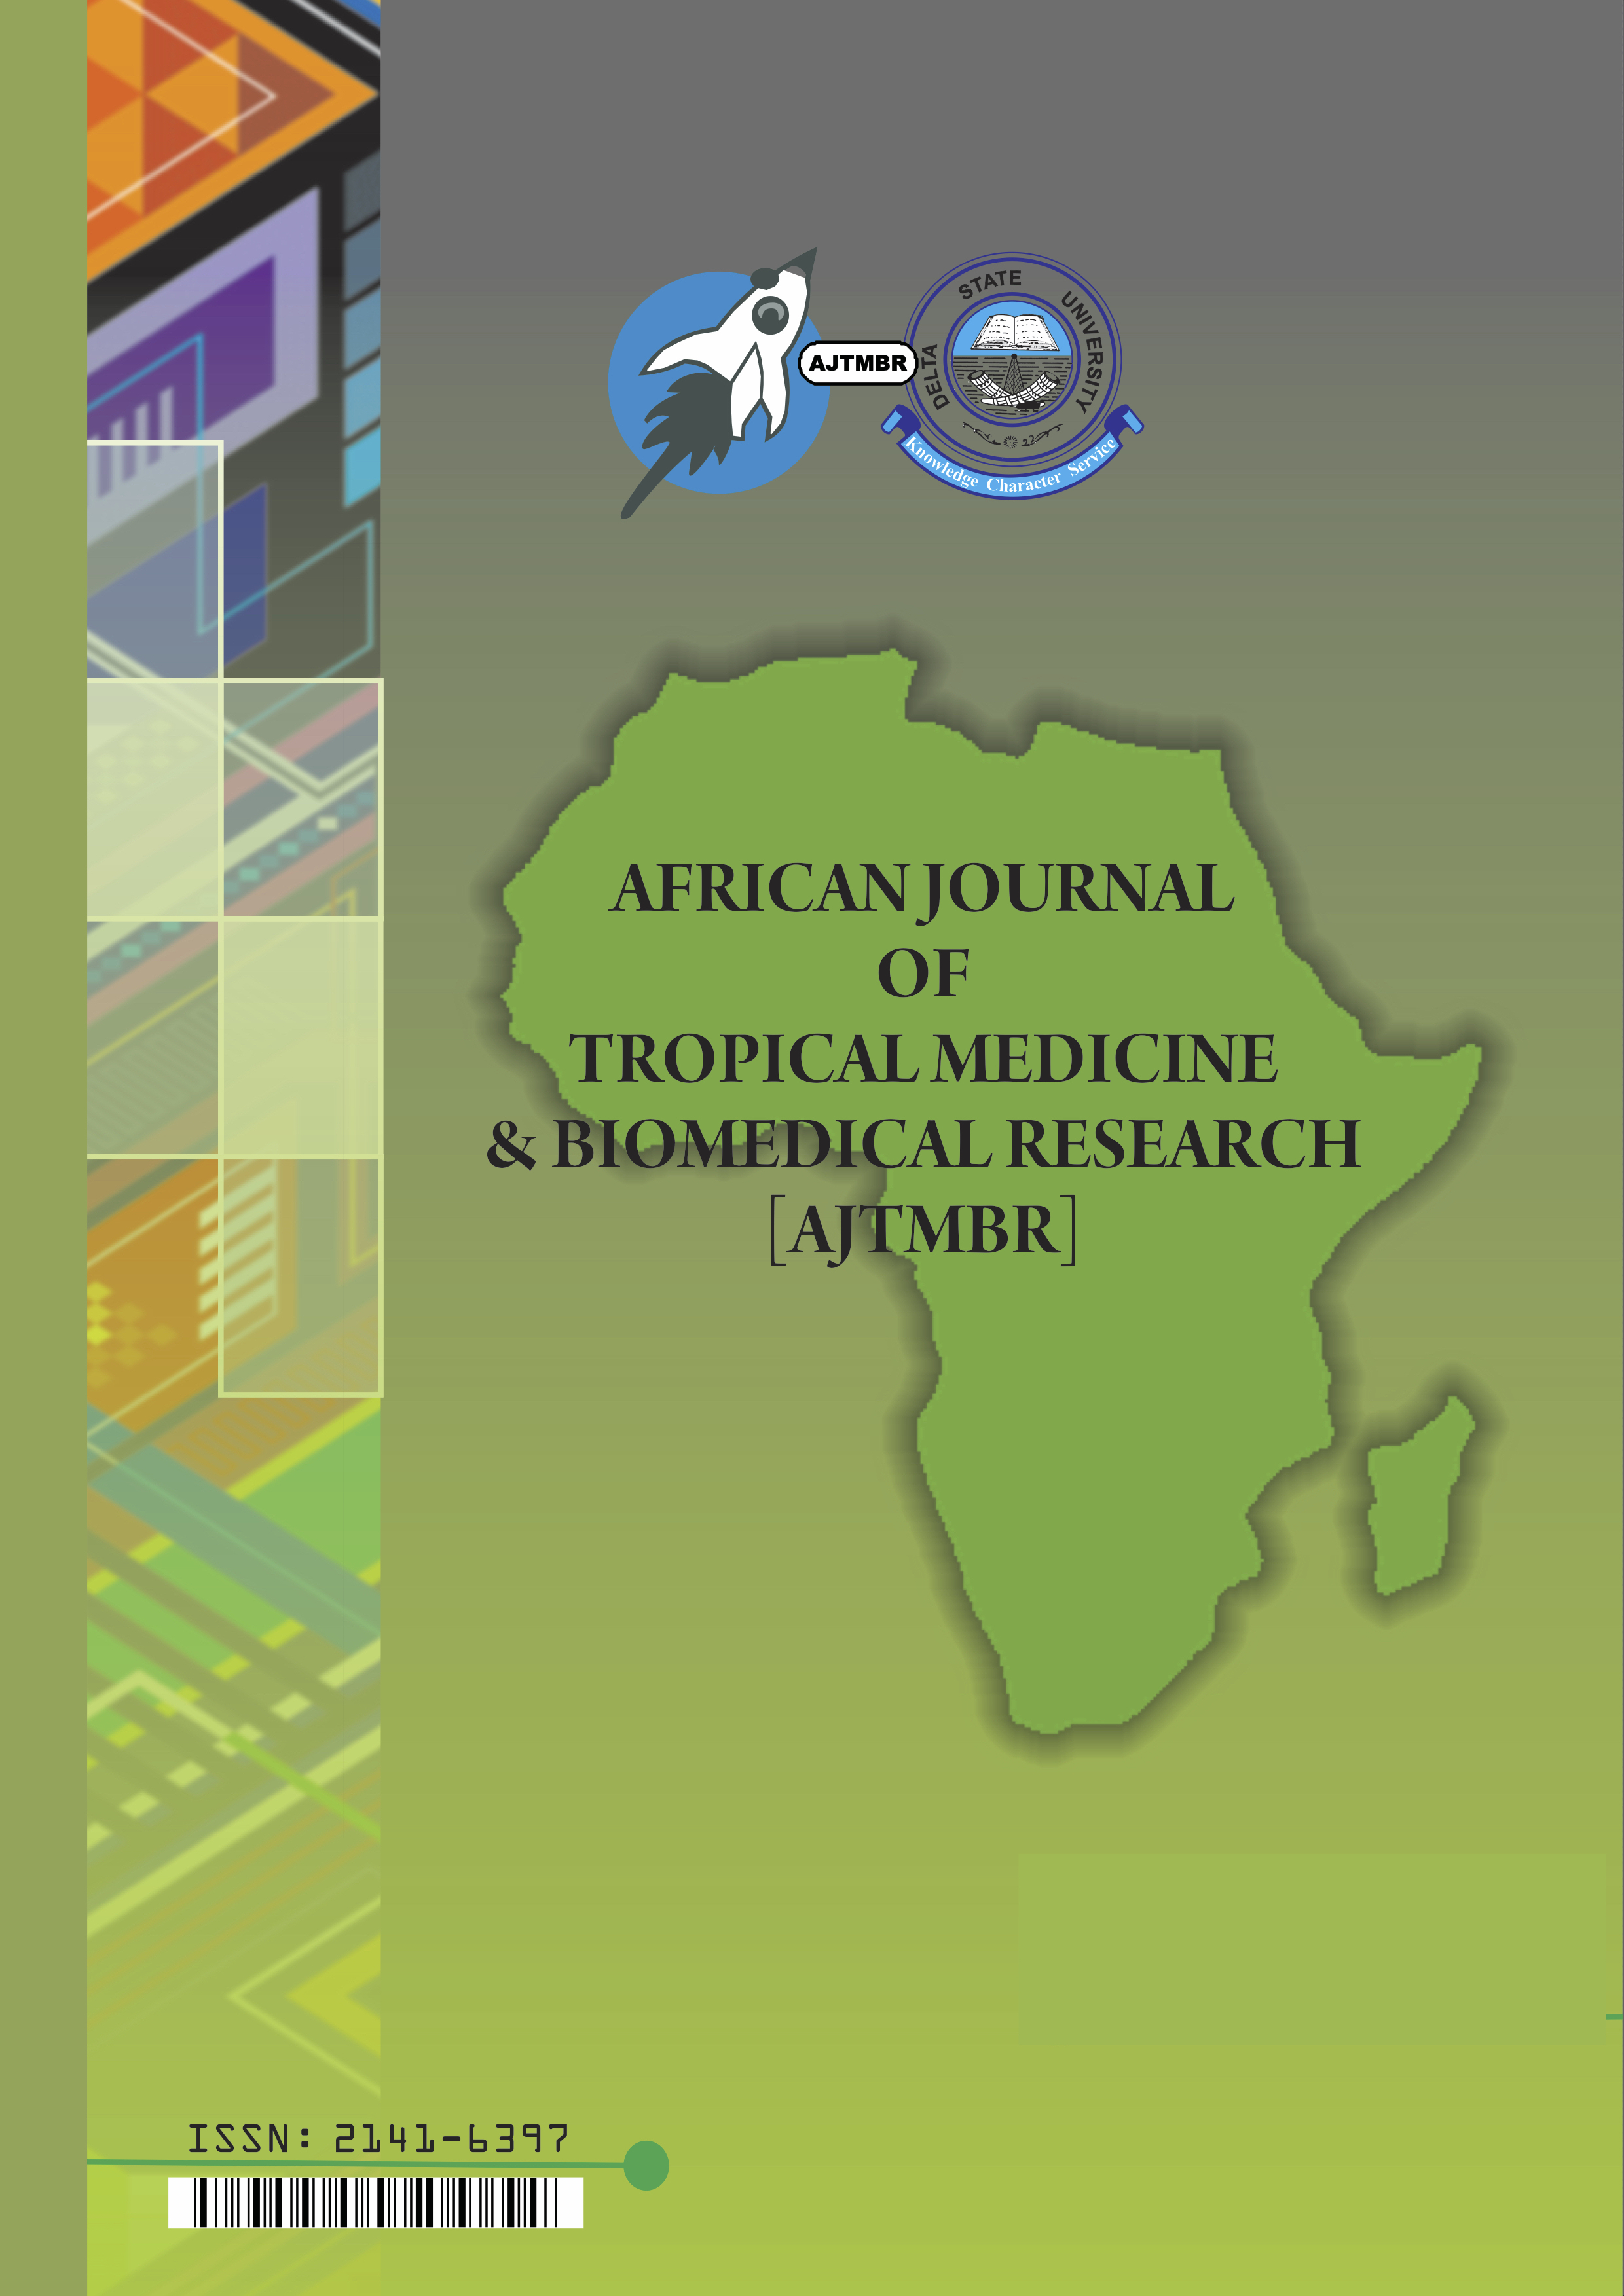 View Vol. 1 No. 4: African Journal of Tropical Medicine and Biomedical Research; September 2012